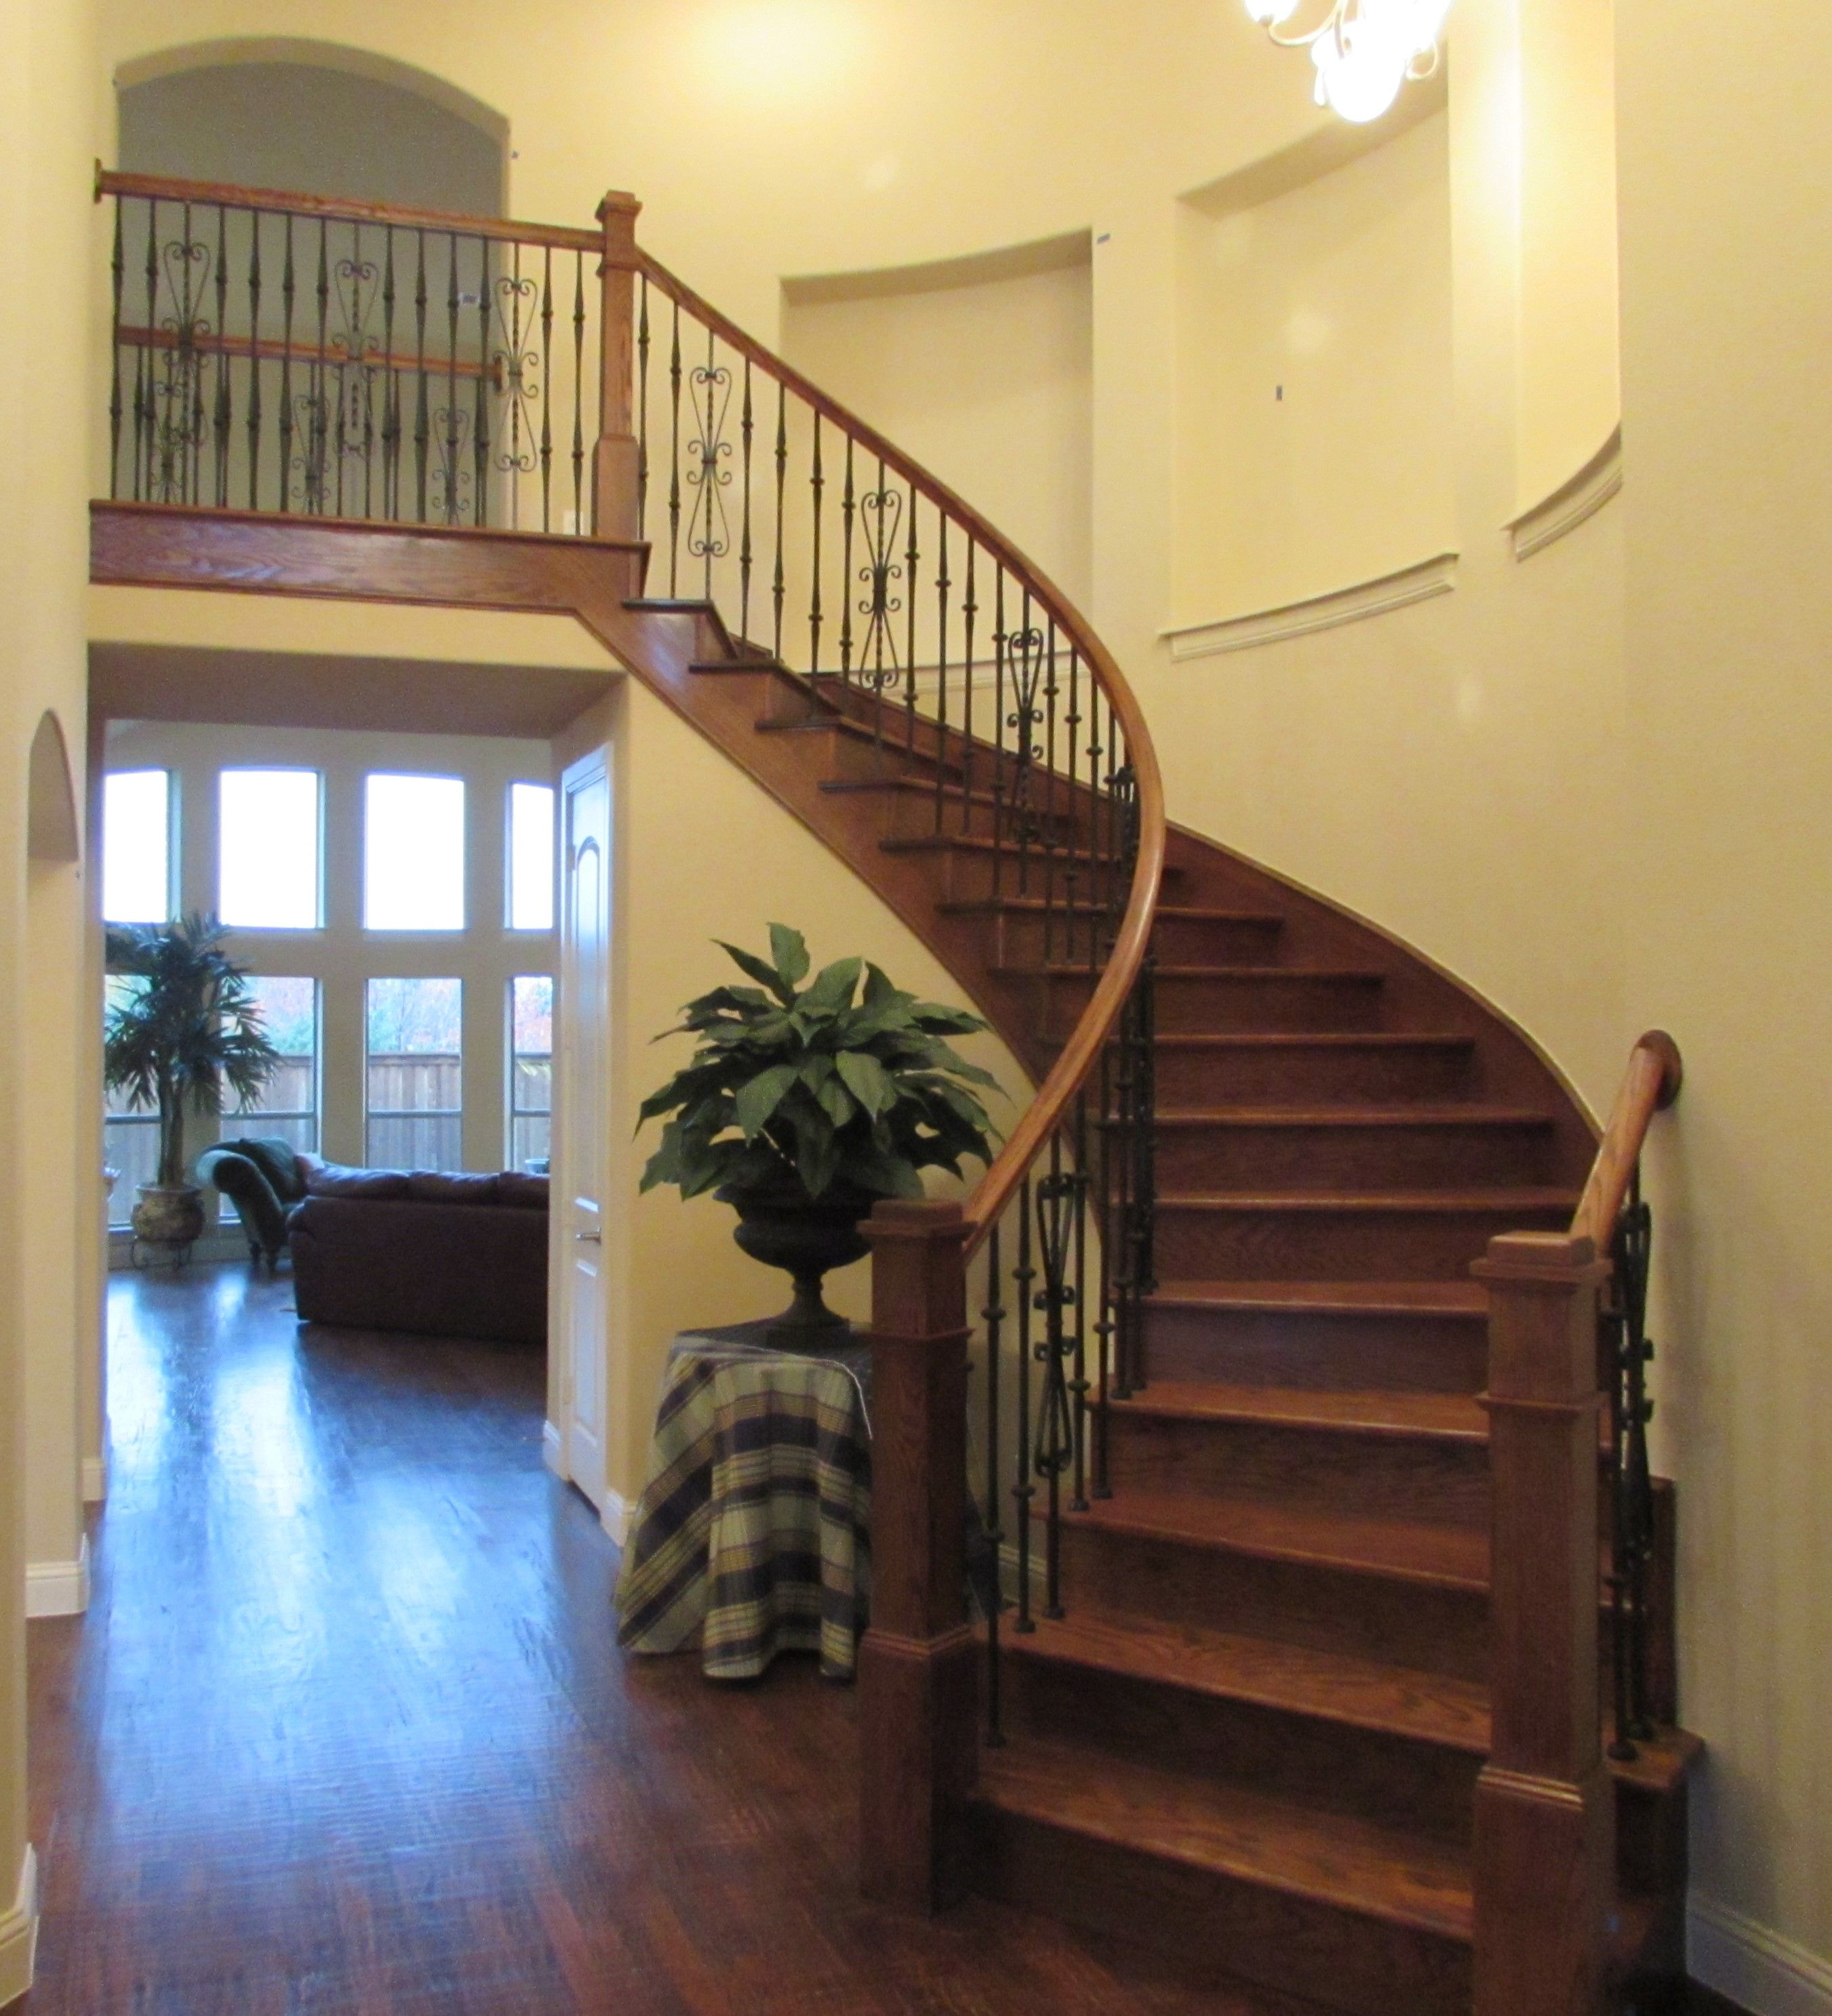 Wrought Iron Staircase: Dramatic Curved Staircase With Wrought Iron Balusters